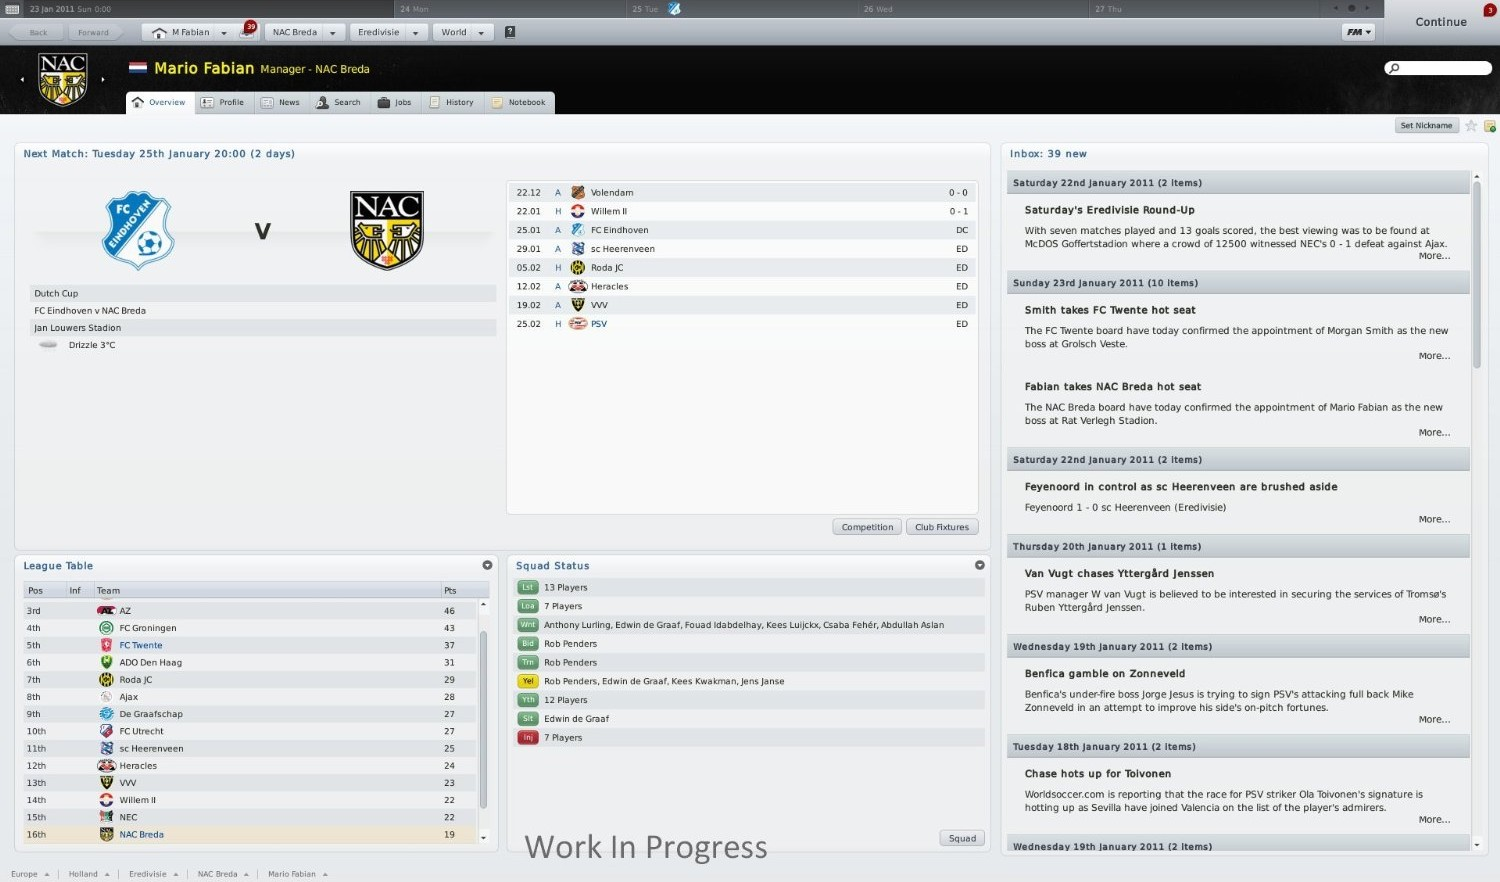 Football manager 2011 v11 3. 0 update-outlaws full game free pc.